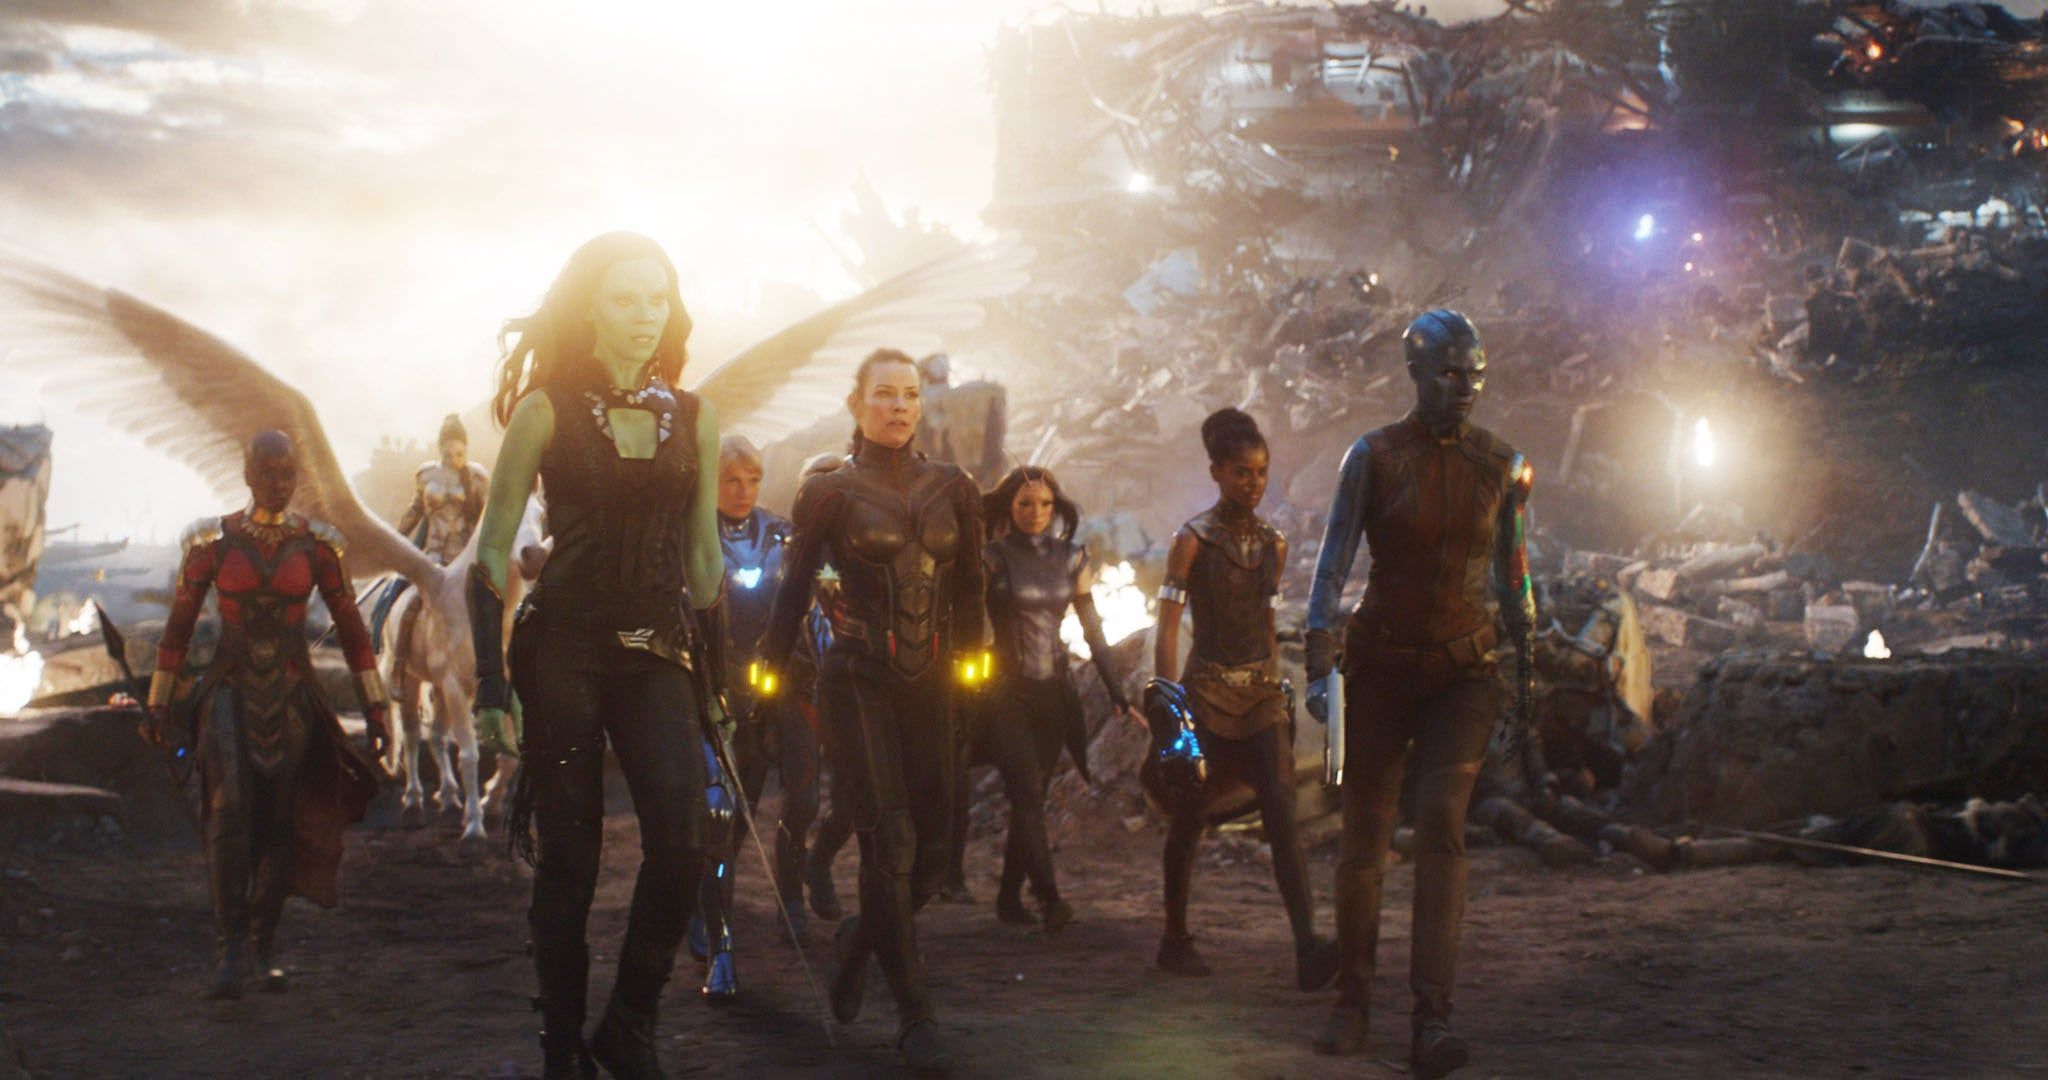 AVENGERS: ENDGAME, (aka AVENGERS 4), from left: Danai Gurira as Okoye, Zoe Saldana as Gamora, Gwyneth Paltrow as Pepper Potts, Evangeline Lilly as The Wasp, Pom Klementief as Mantis, Letitia Wright as Shuri, Karen Gillan as Nebula, 2019.  Walt Disney Studios Motion Pictures /  Marvel Studios / courtesy Everett Collection